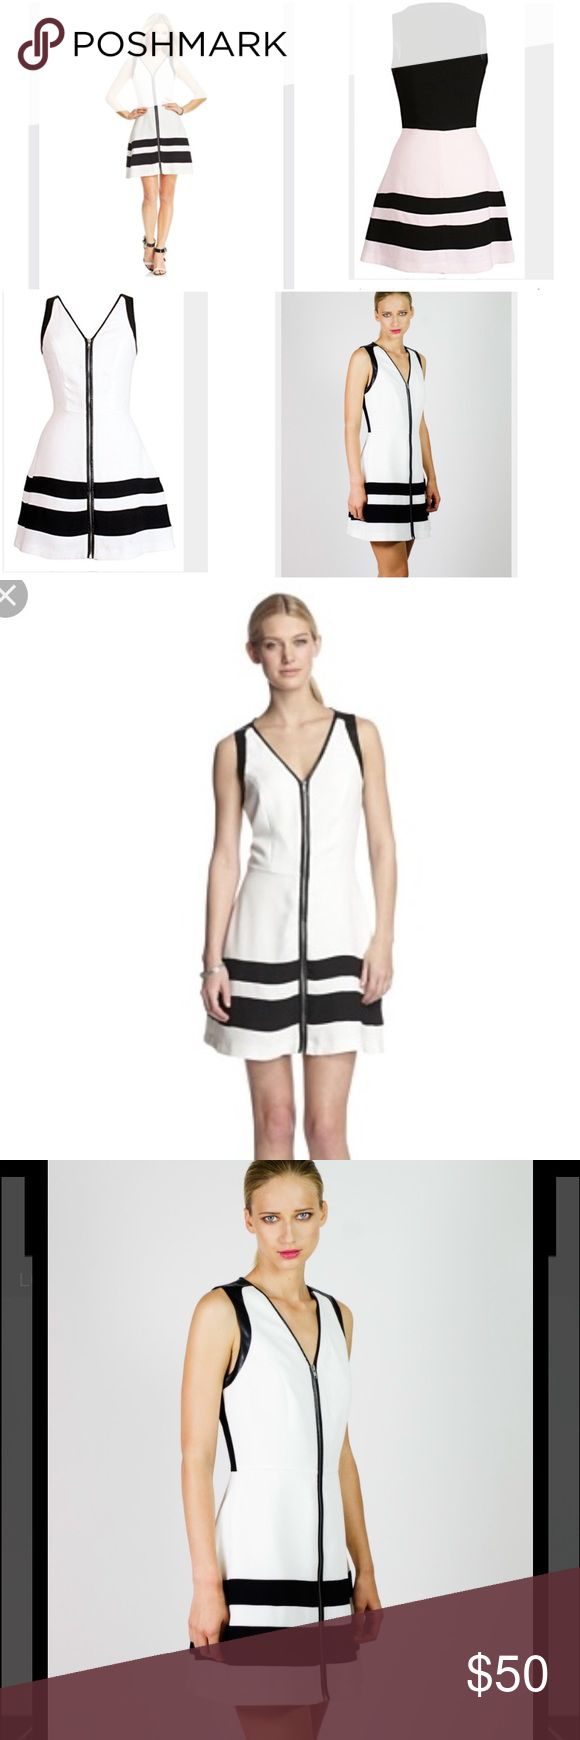 ✨W118 by Walter Baker camia colorblock dress✨ Brand new W118 faux leather colorblock dress. The faux leather is around the sleeves. Has very minor snag but barely noticeable. W118 by Walter Baker Dresses